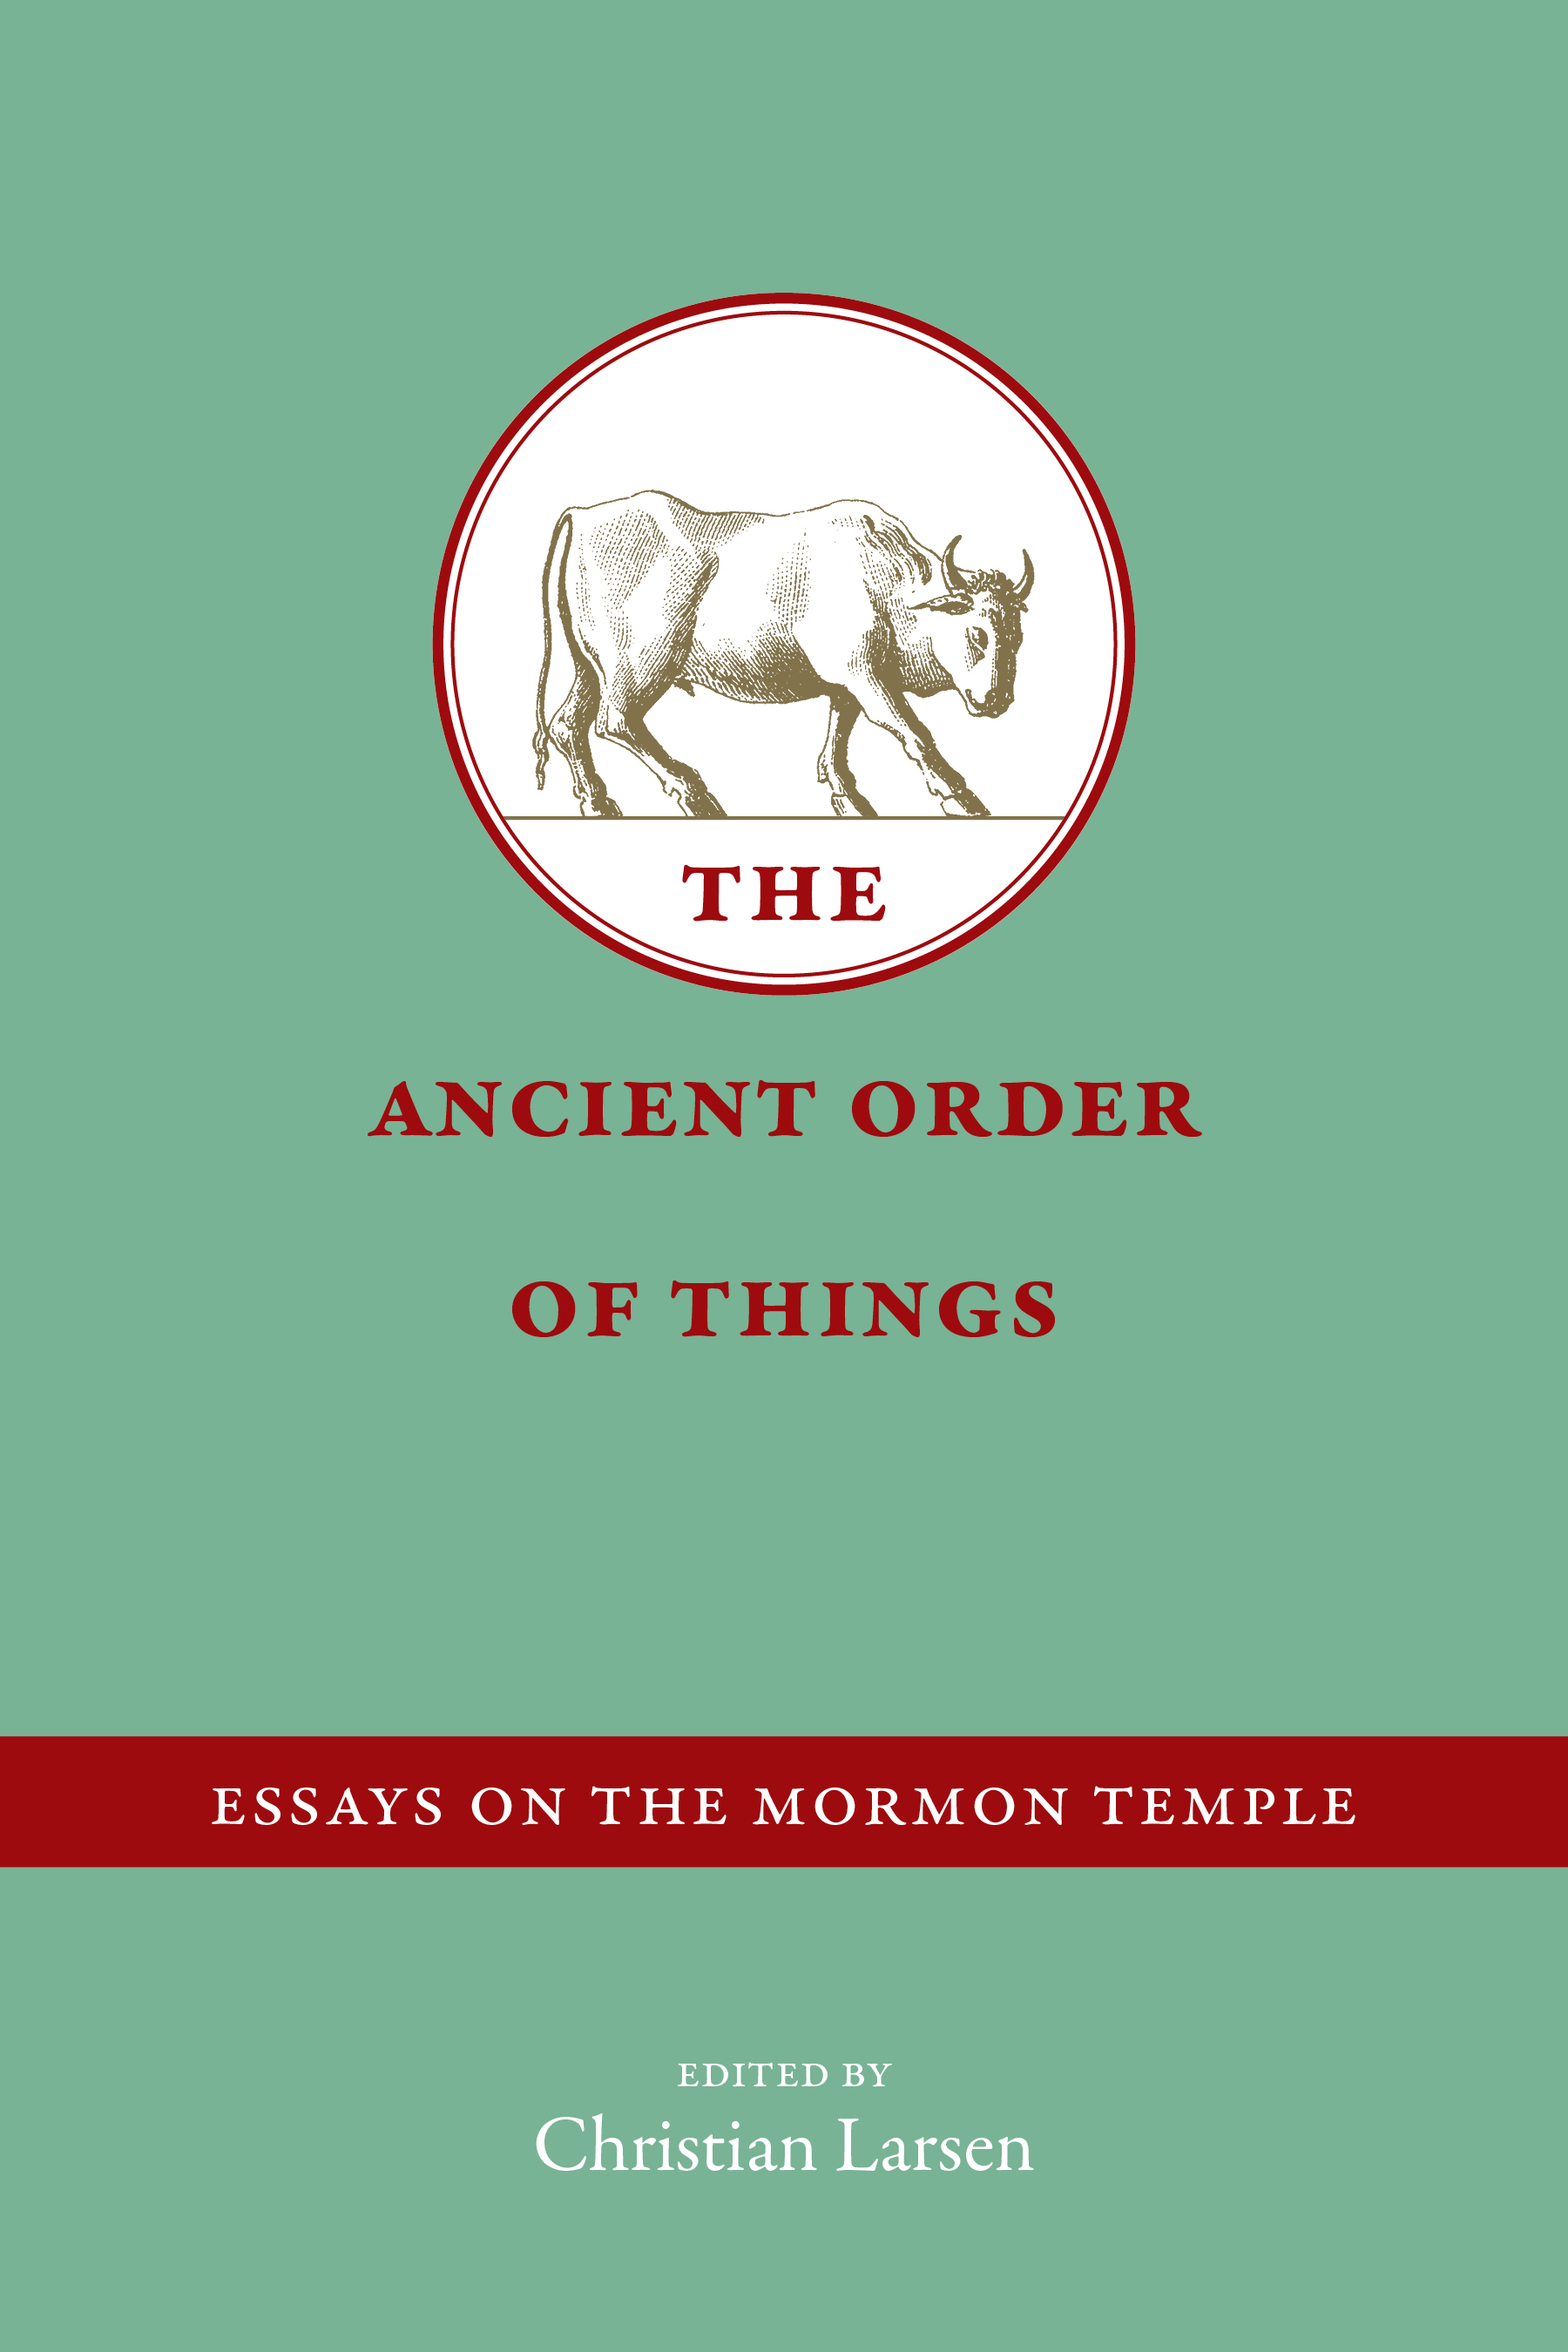 014 Ancient Order Of Things Essay Example Mormon Exceptional Essays Lds.org Book Abraham Mormonthink Full